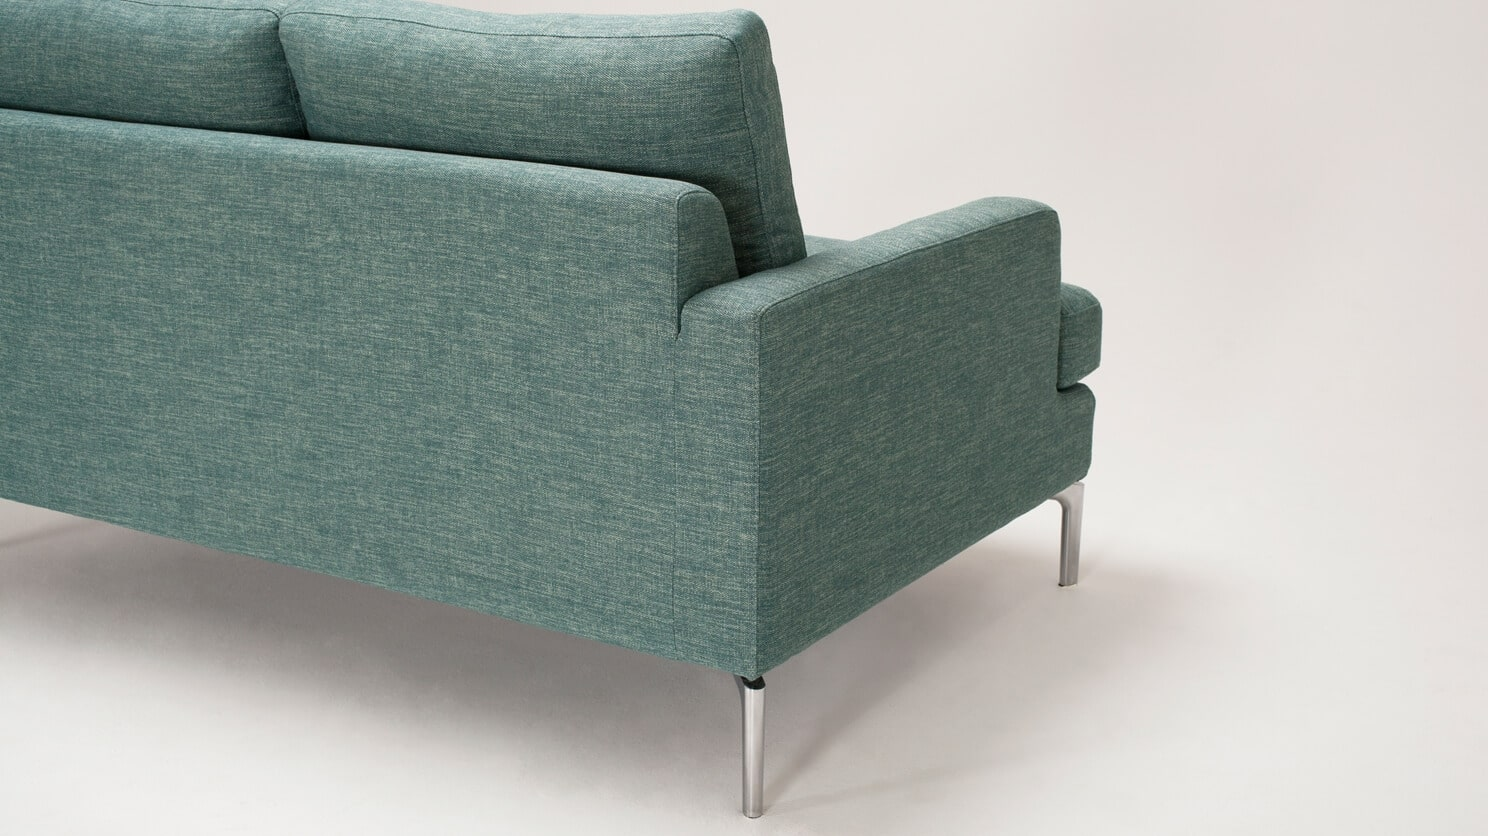 31127 03 07 loveseat eve key largo teal detailed back view